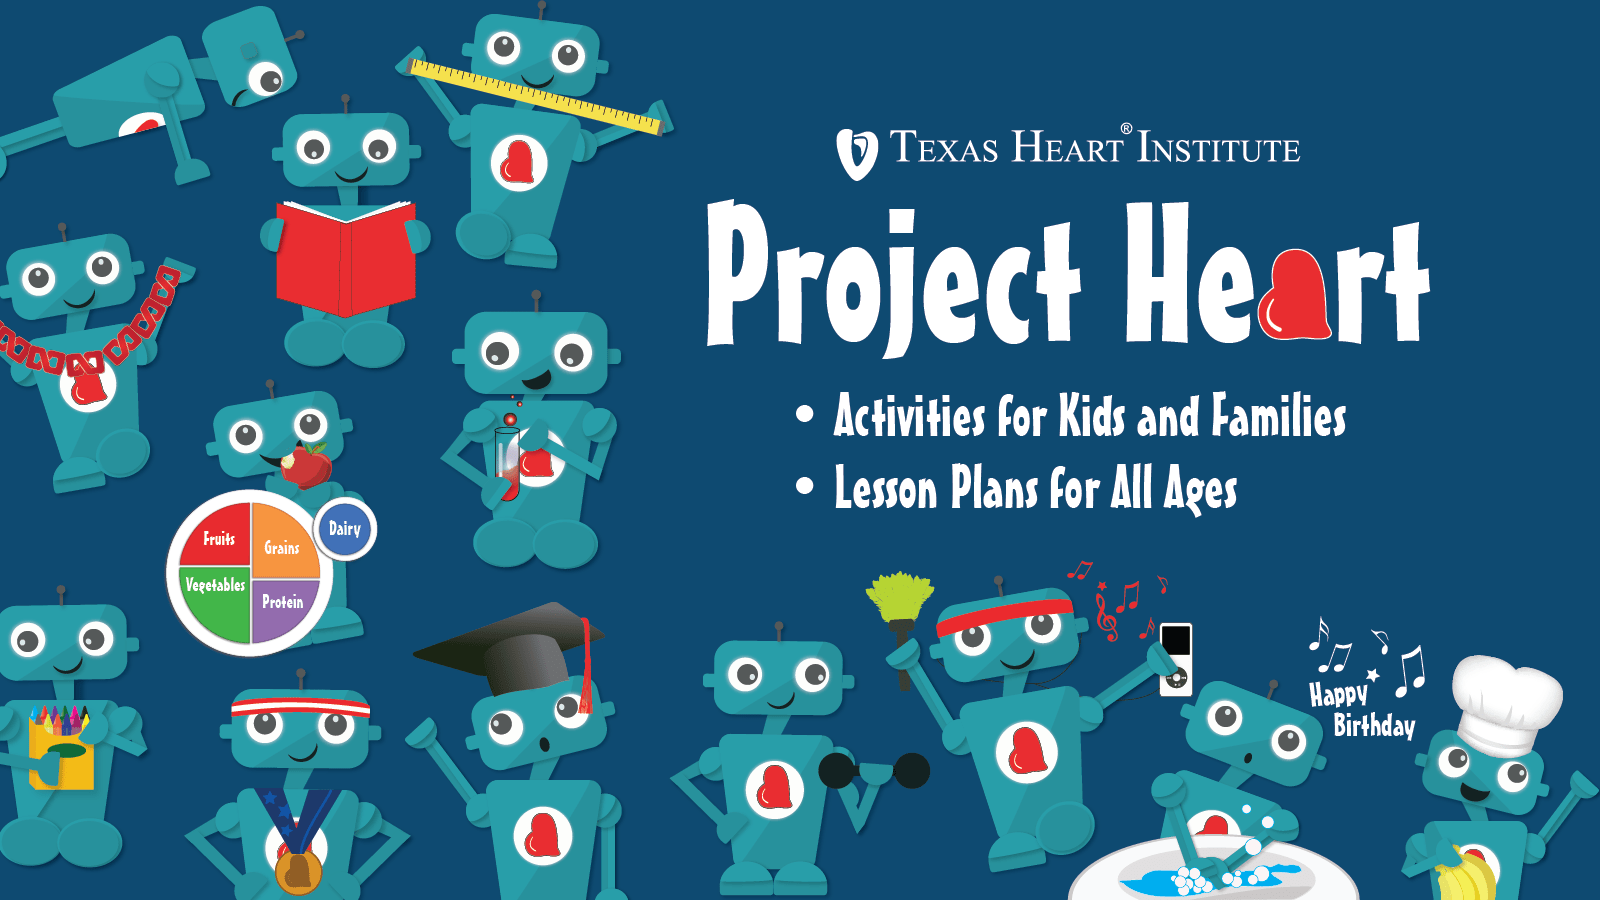 hight resolution of Project Heart   Texas Heart Institute